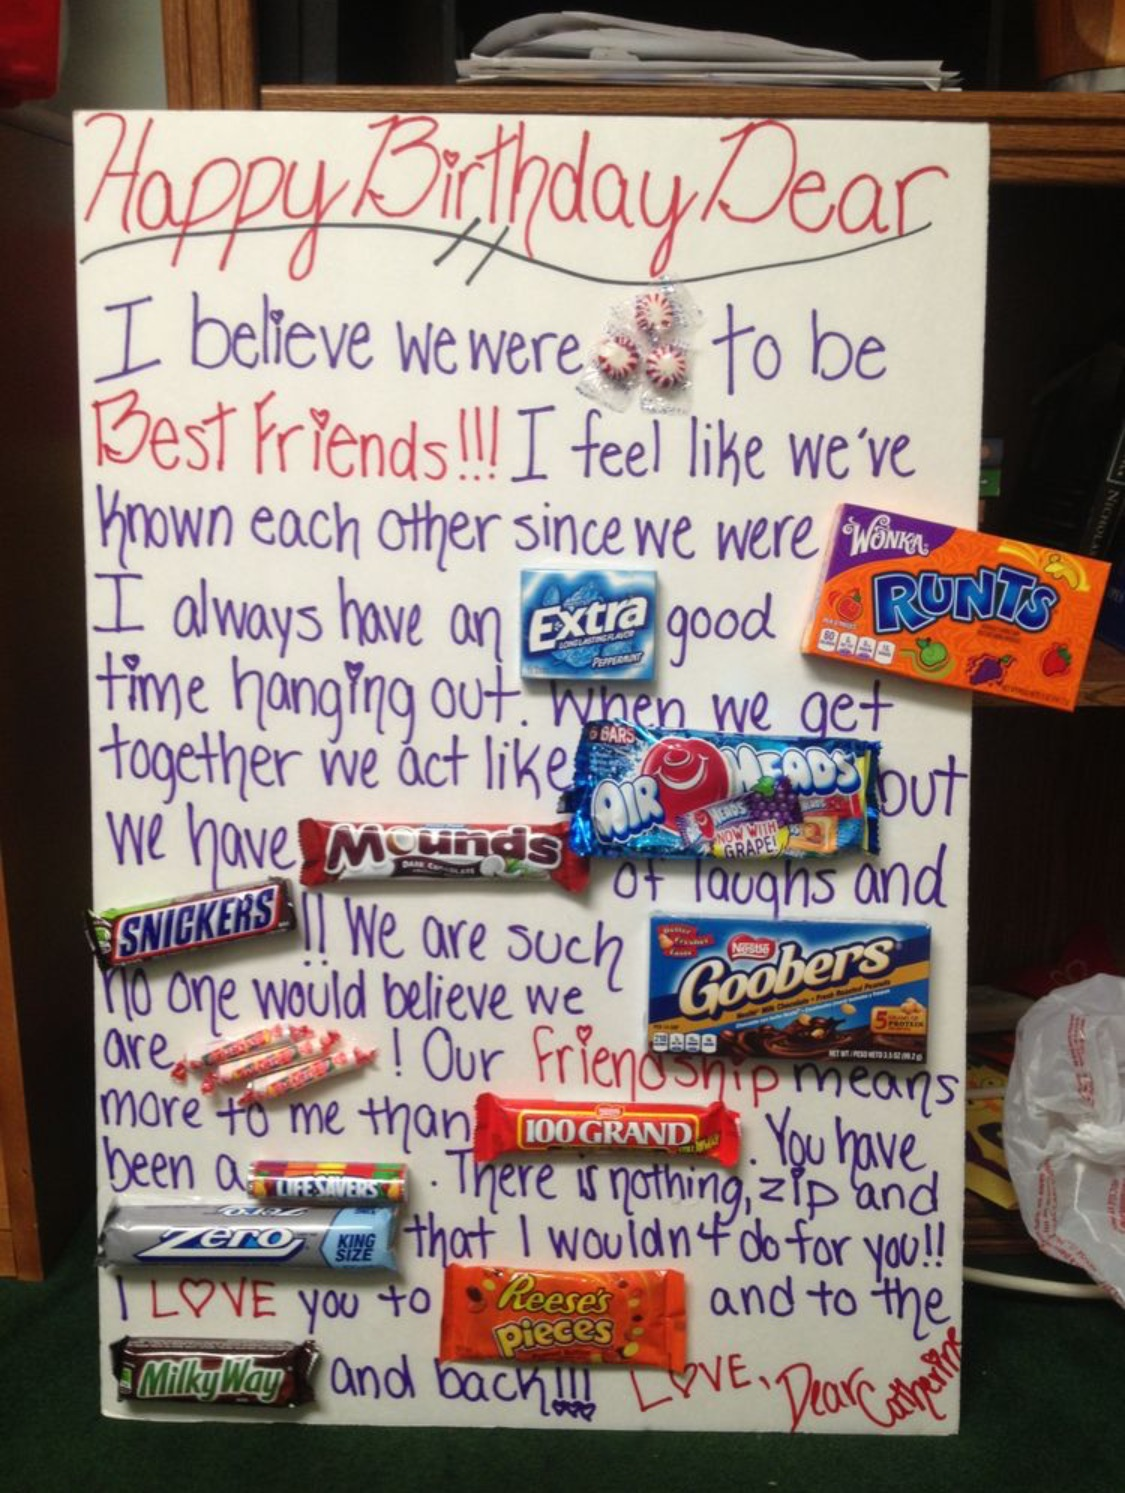 birthday posters for friends ; best%2520friend%2520birthday%2520poster%2520ideas%2520;%25202b1efb6befe8ab92ad3315ae9a35704e